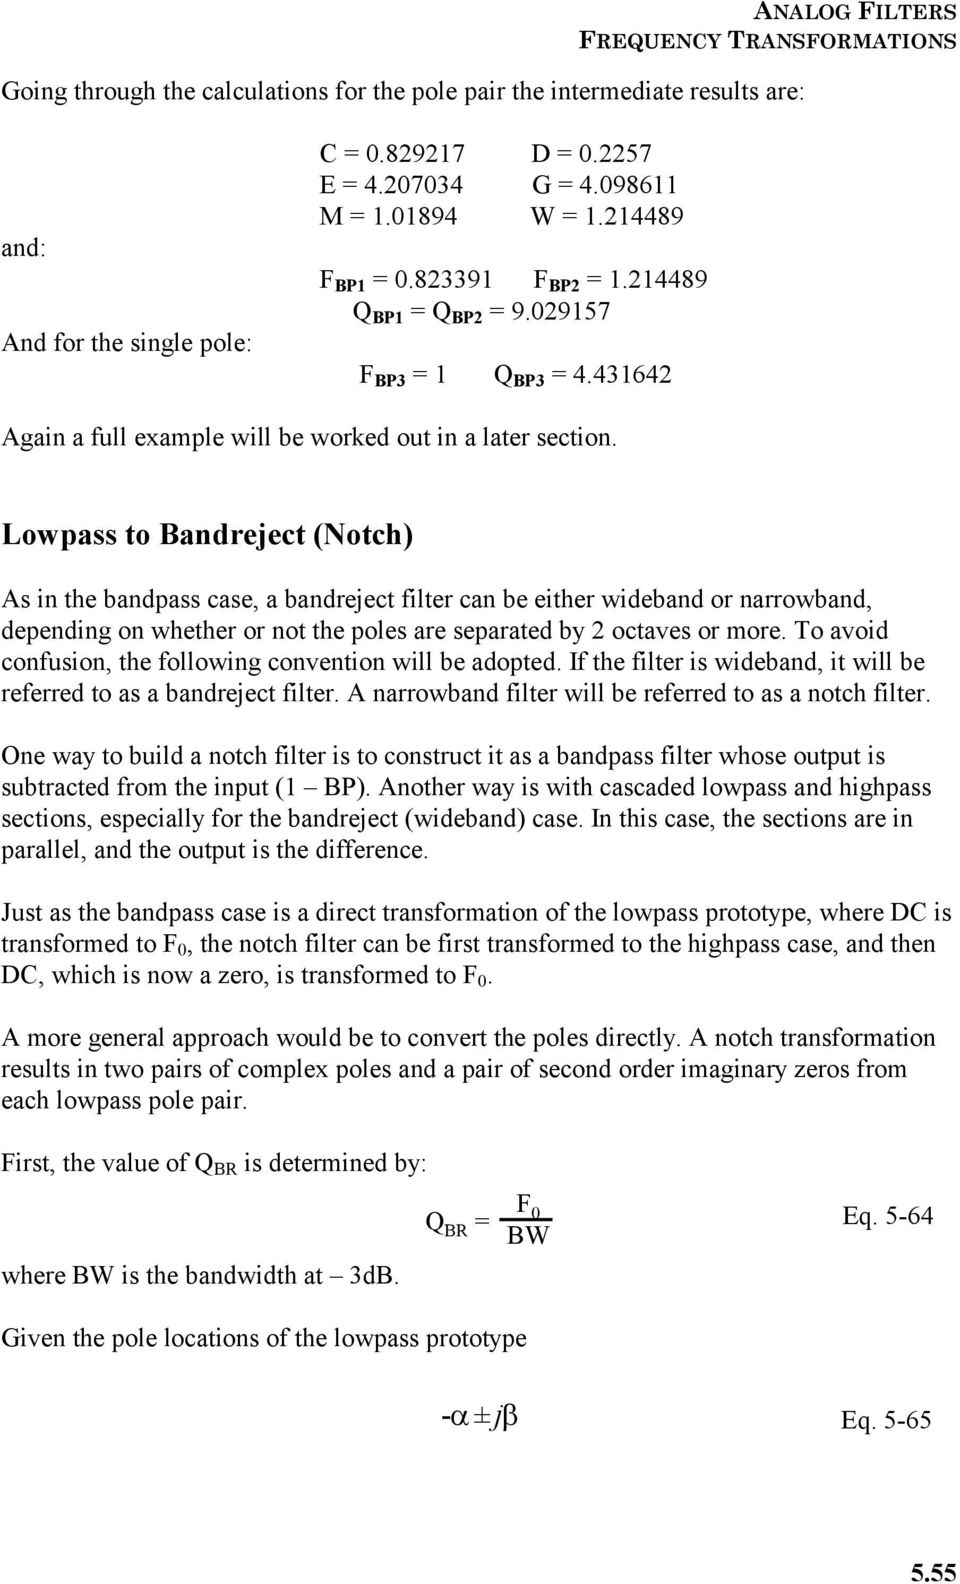 Section 5 Frequency Transformations Pdf Circuit Questions And Answers Bandreject Allpass Filters Lowpass To Notch As In The Bandpass Case A Filter Can